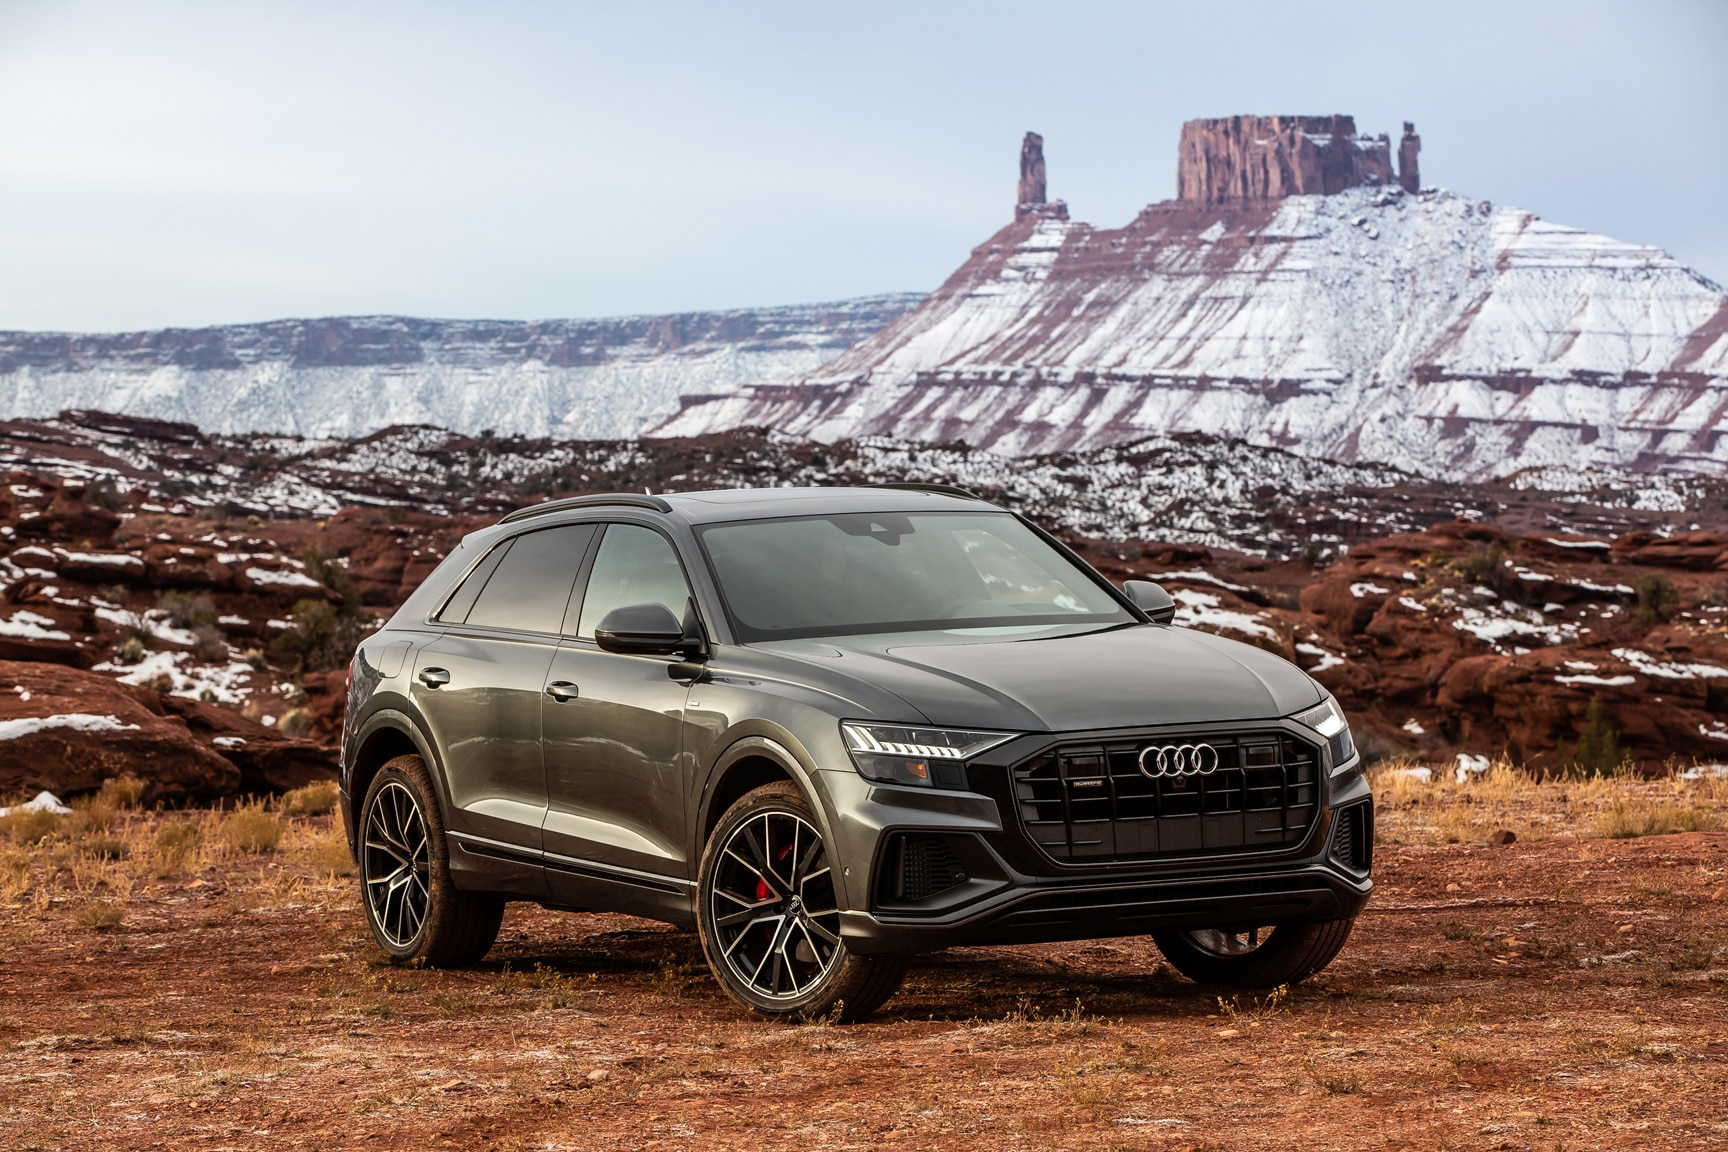 2019 Audi Q8 Review You Don T Need To Drive It To Get It